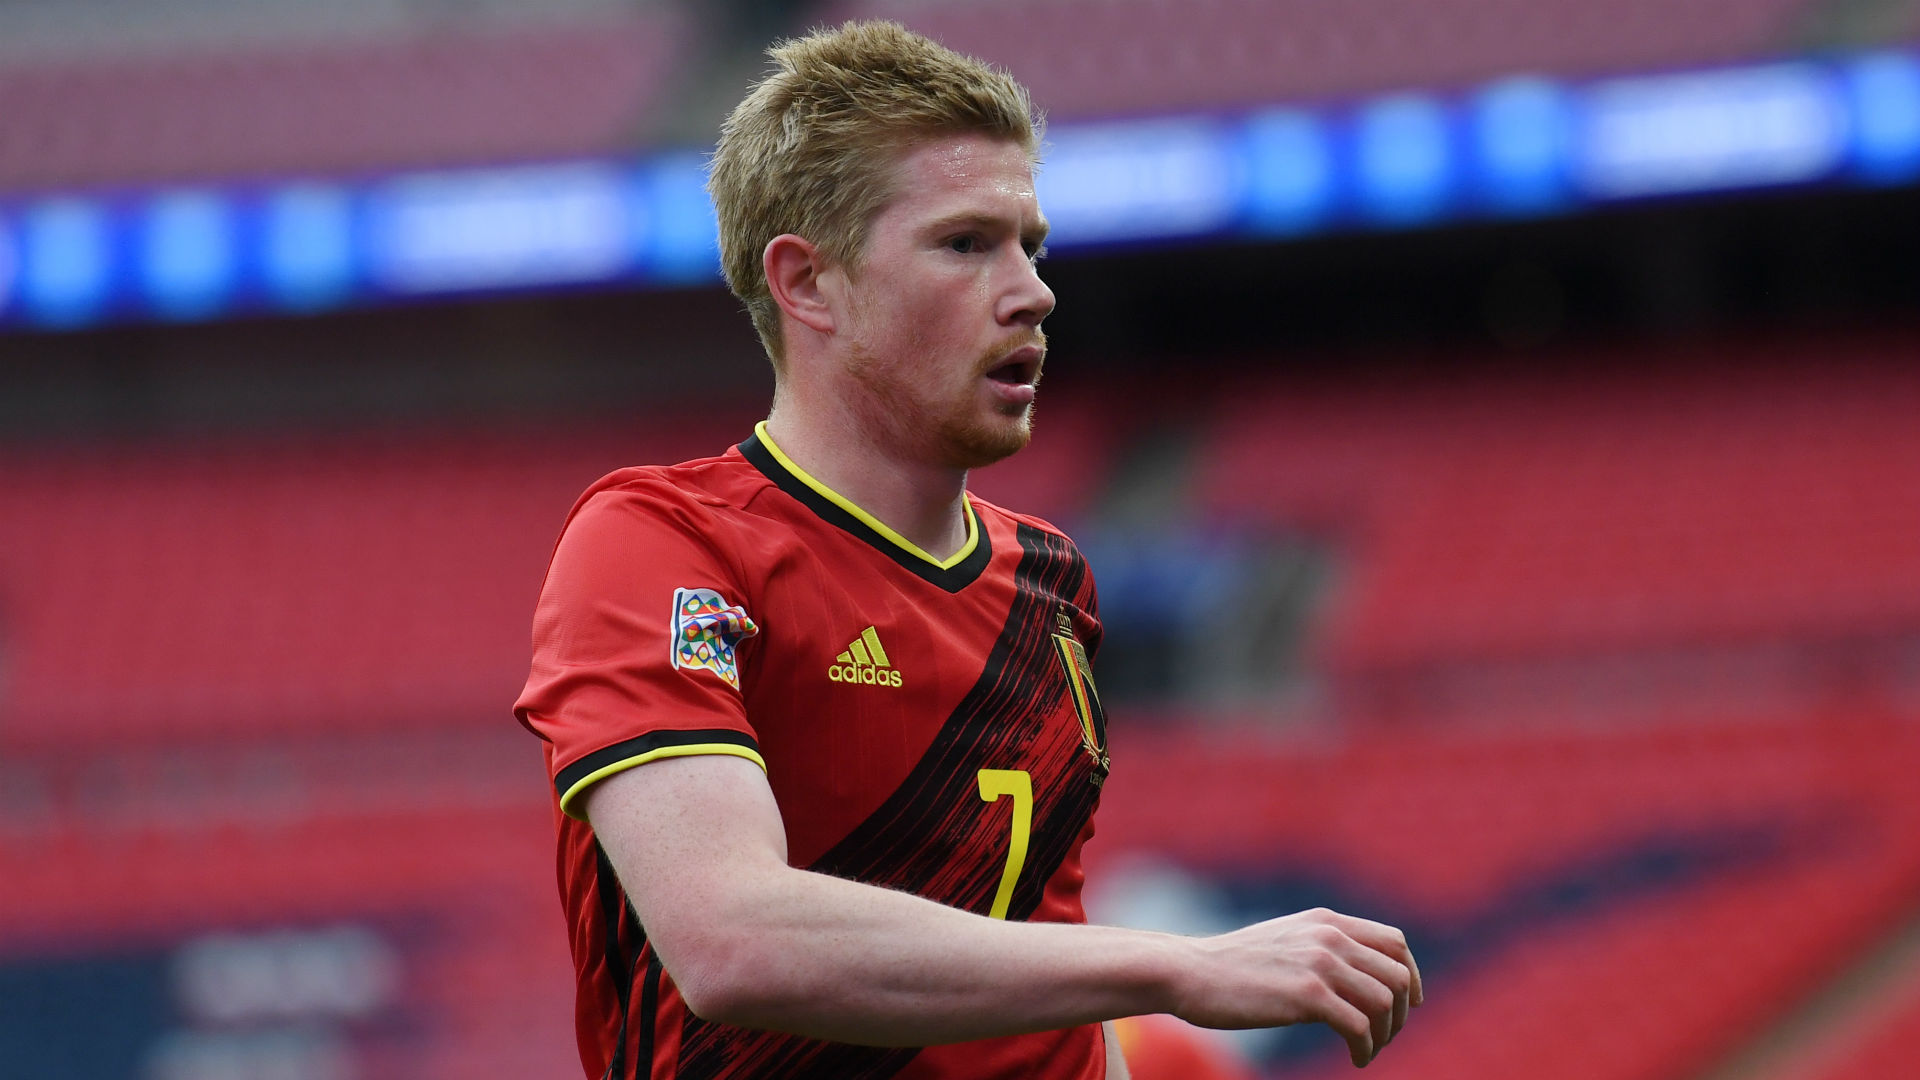 Injured De Bruyne to miss upcoming games for Man City